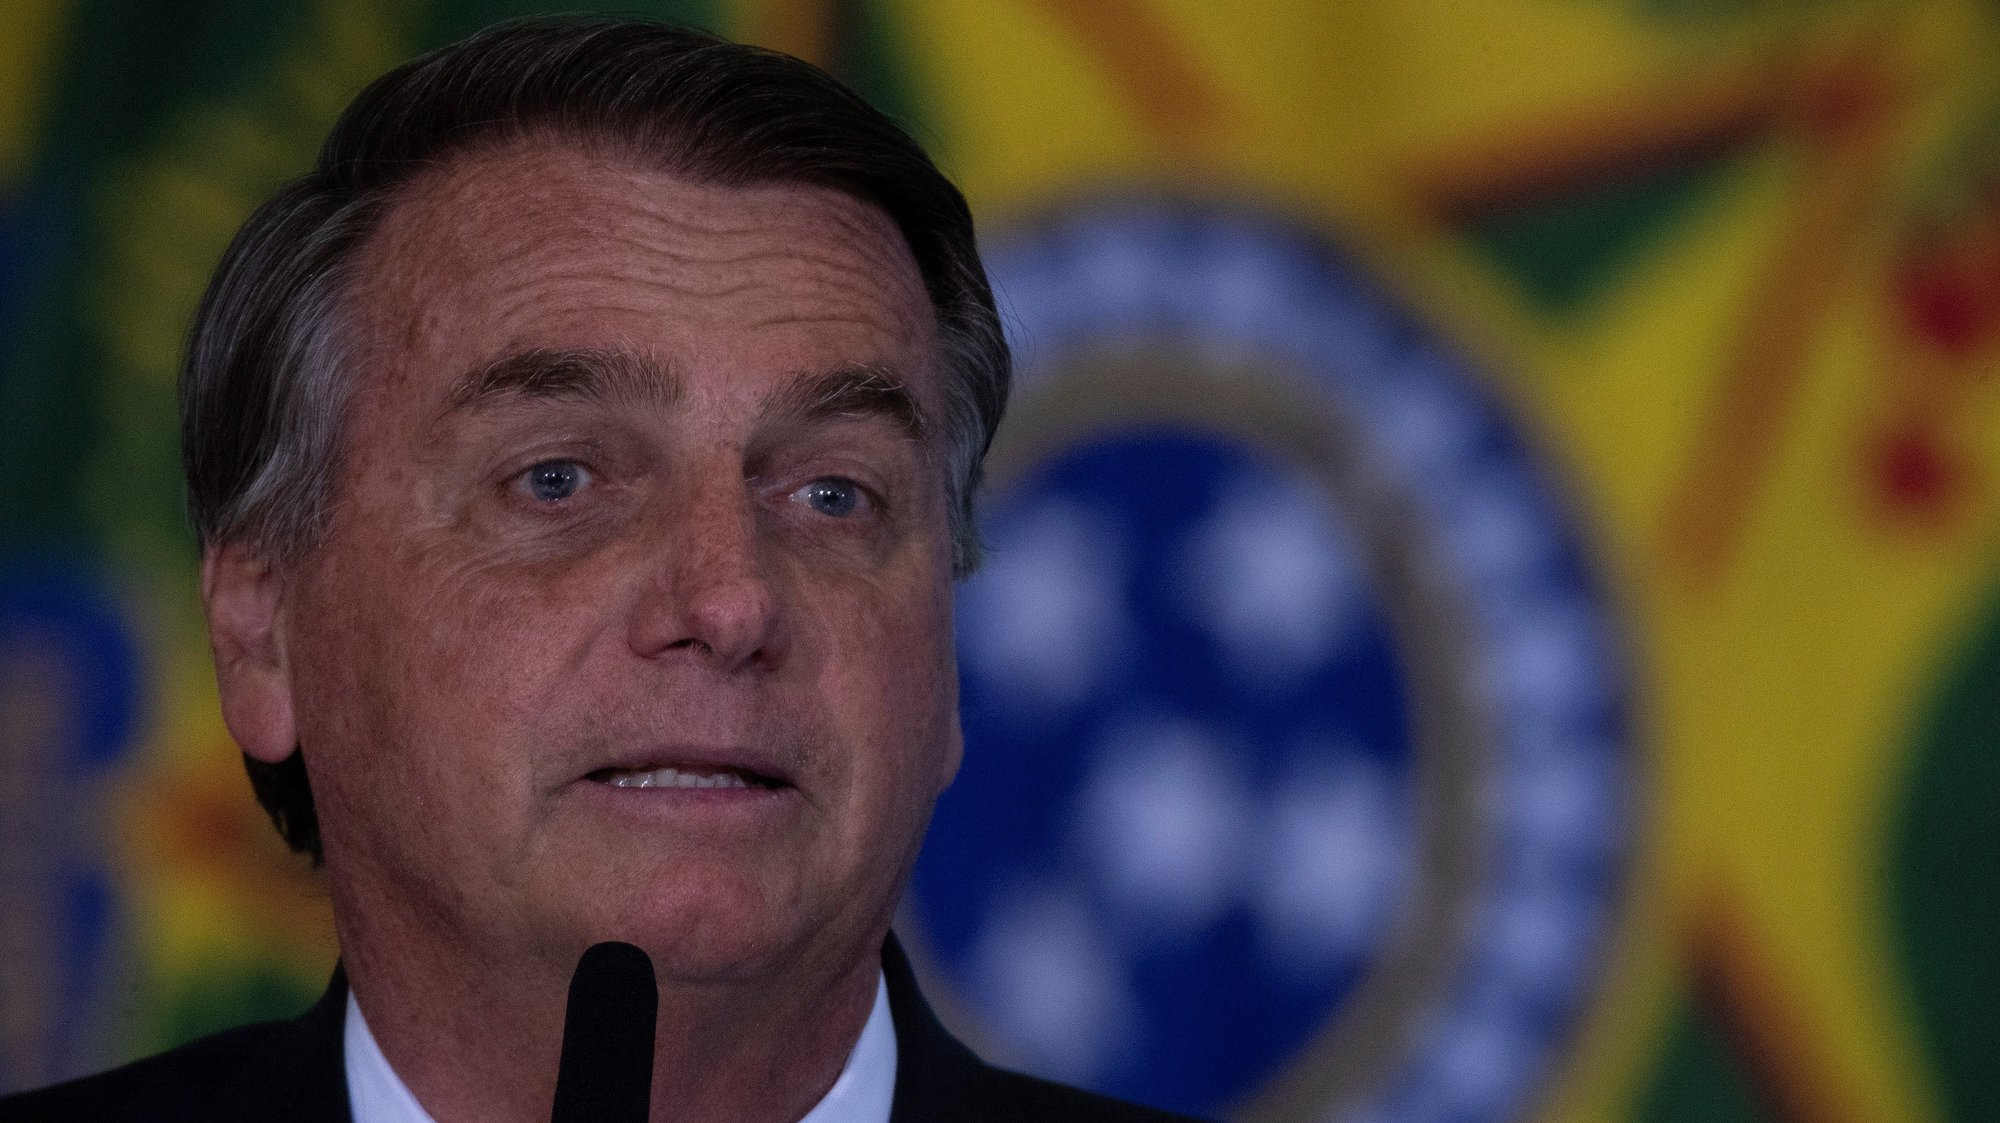 epa09431372 The President of Brazil Jair Bolsonaro participates in an act in honor of the National Volunteer Day, at the Palacio do Planalto, in Brasilia, Brasilia, 26 August 2021. Bolsonaro stated this 26 August that a favorable decision by the Supreme Court on the 'ancestral' right to land defended by indigenous peoples 'will end' the country's agribusiness, one of the world's largest producers and exporters of food.  EPA/Joedson Alves